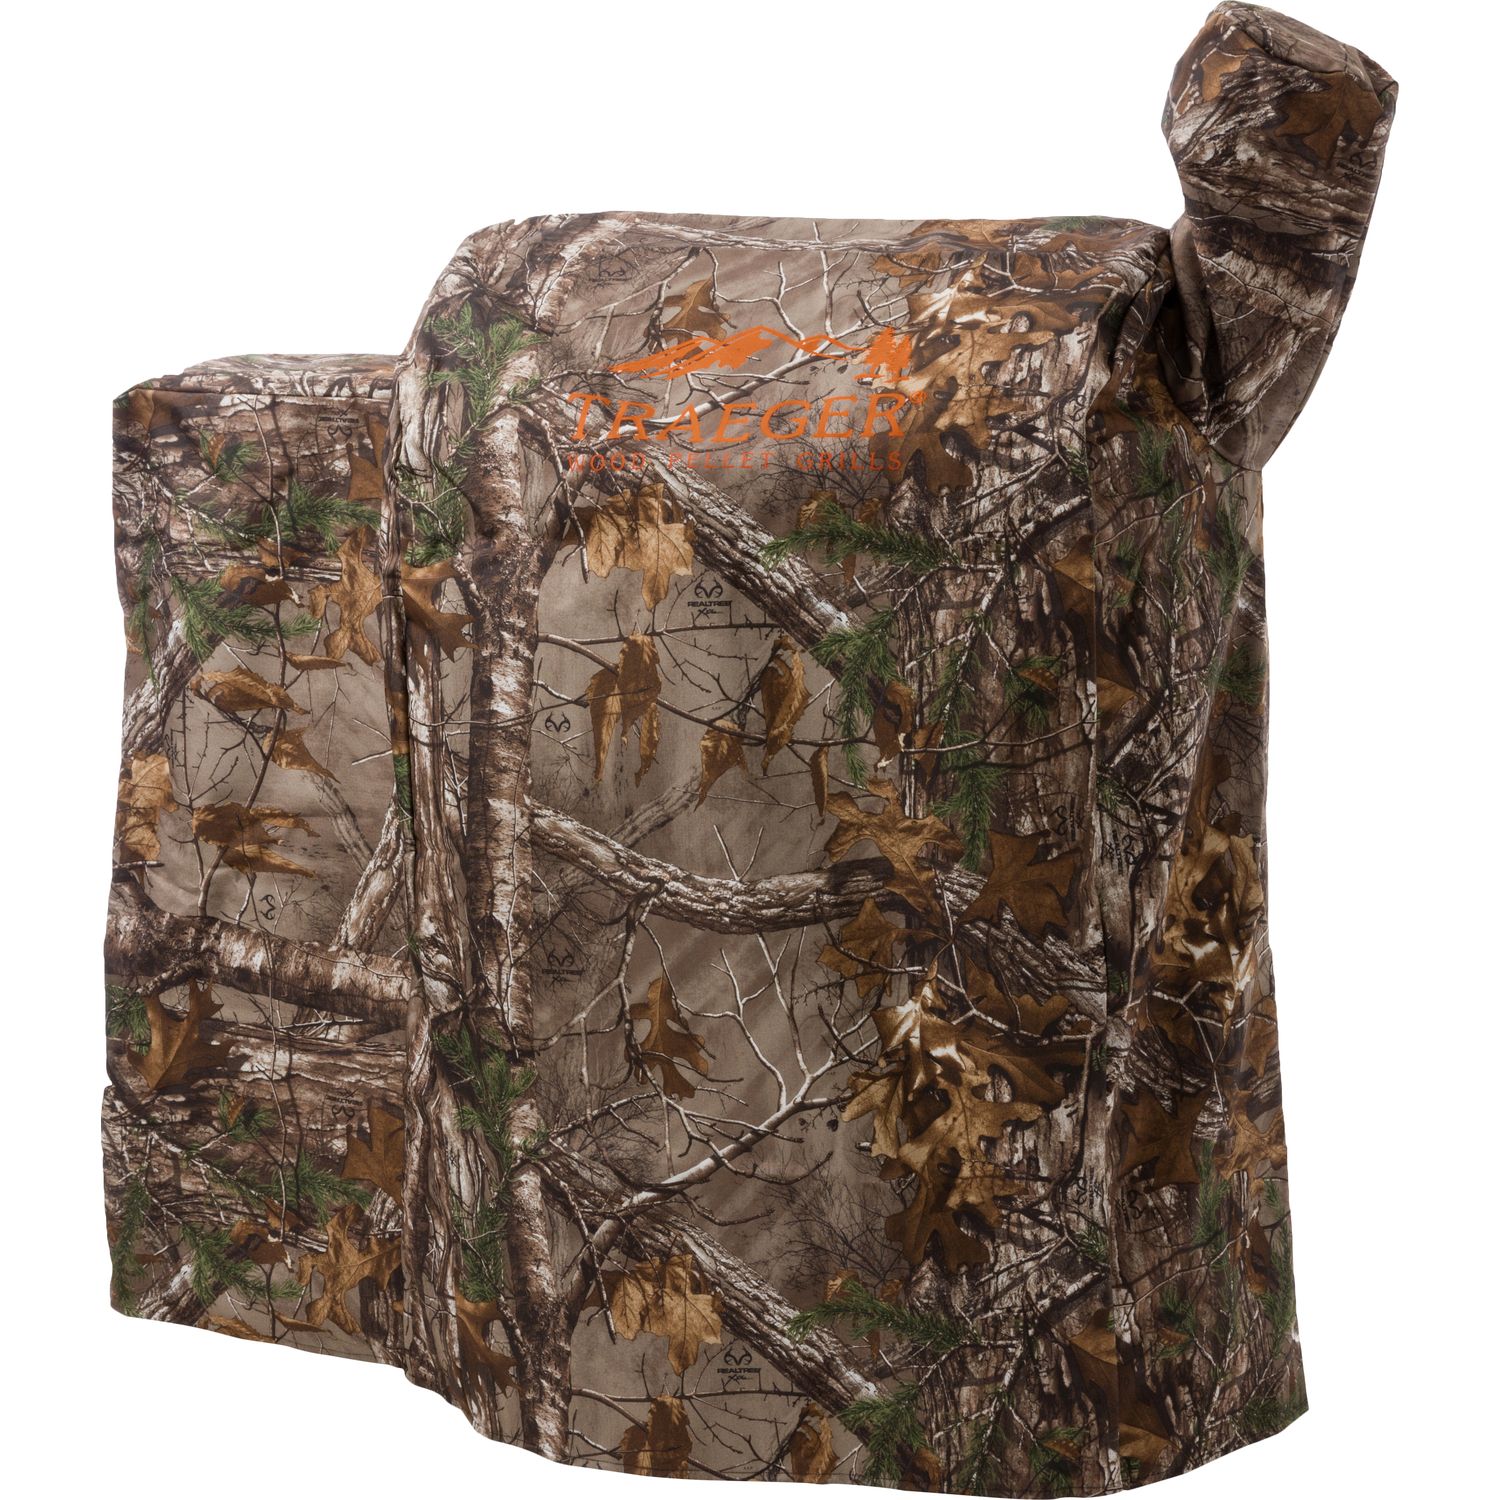 Traeger  Realtree  Brown  Grill Cover  22 in. W x 39 in. H x 35 in. D For 22 Series, Lil Tex, Renega